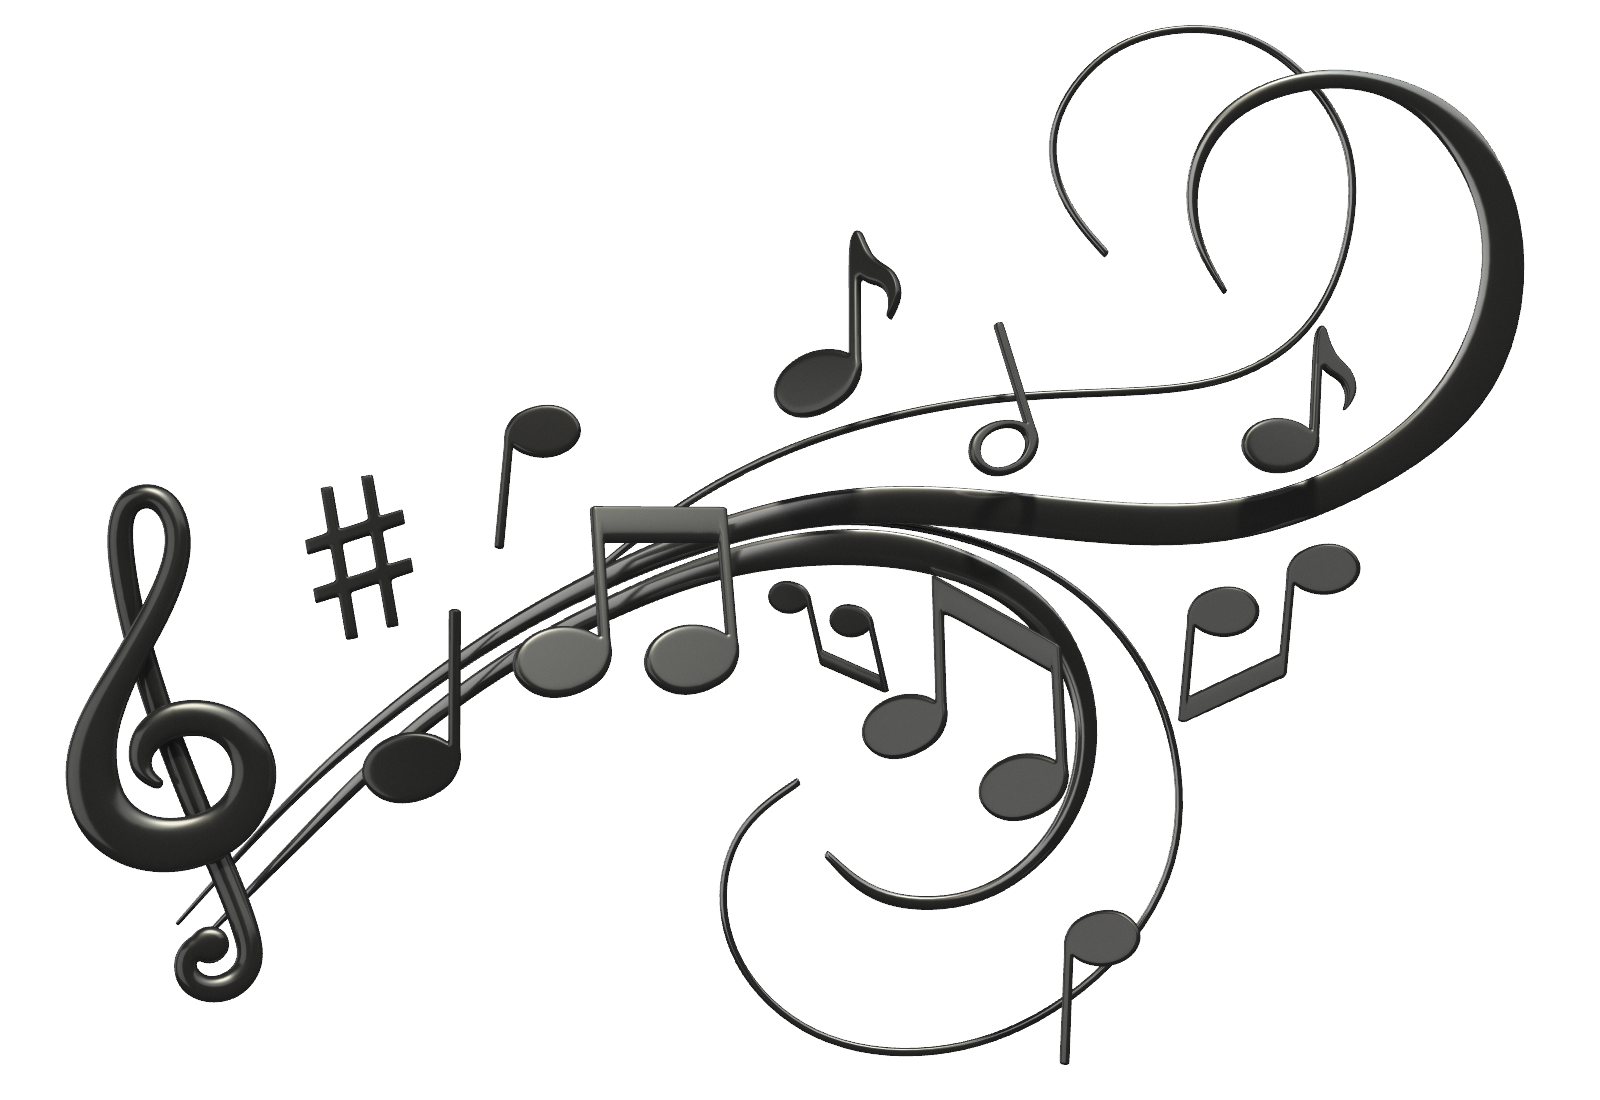 Heartbeat clipart music. Pictures of musical notes